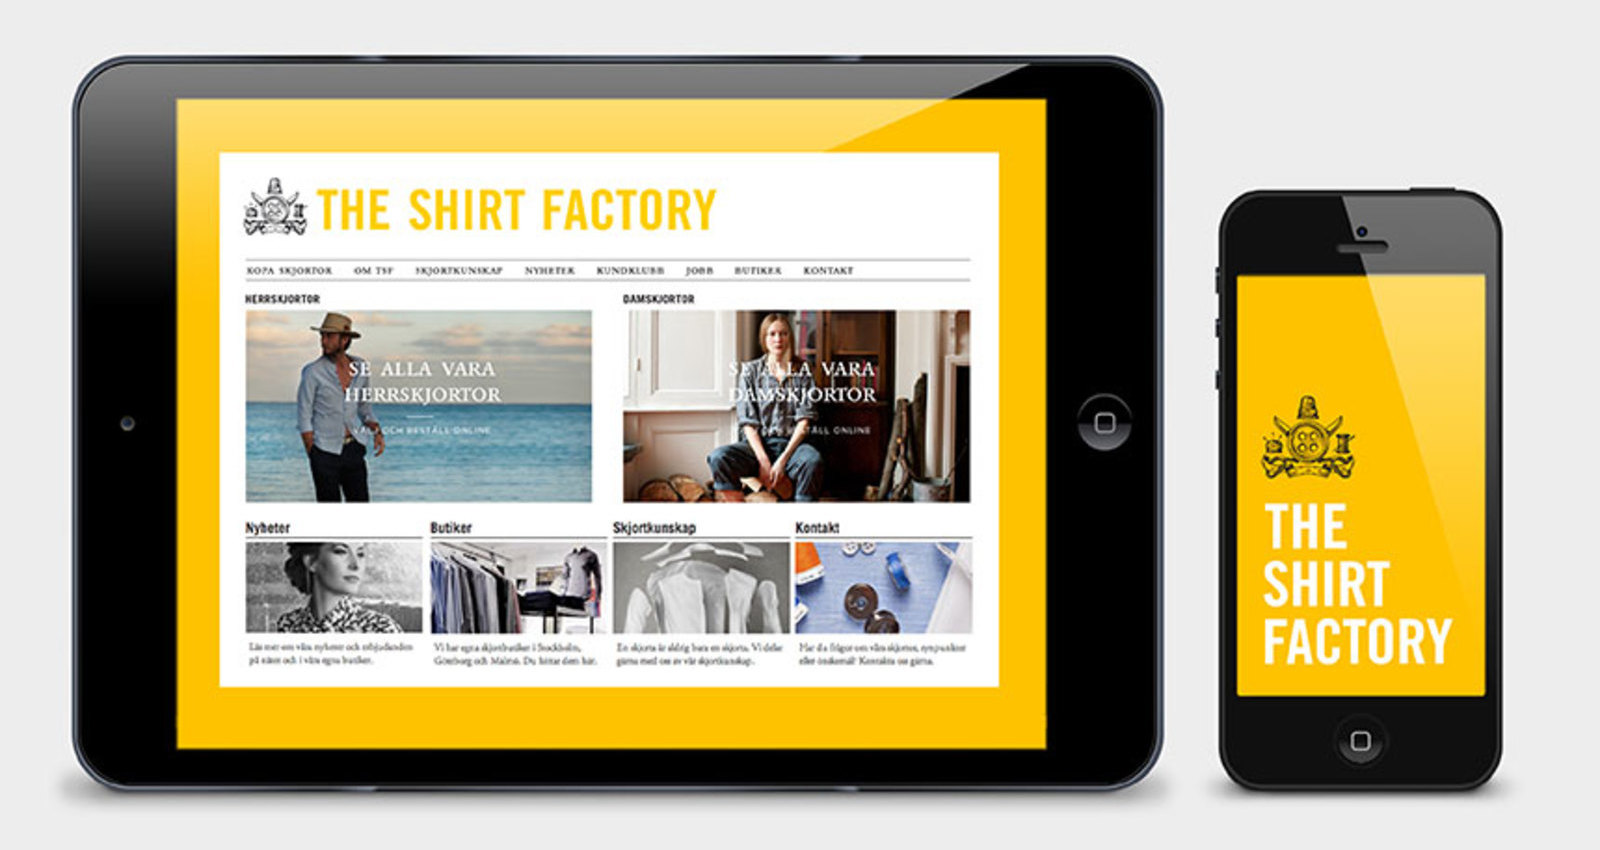 The Shirt Factory redesign